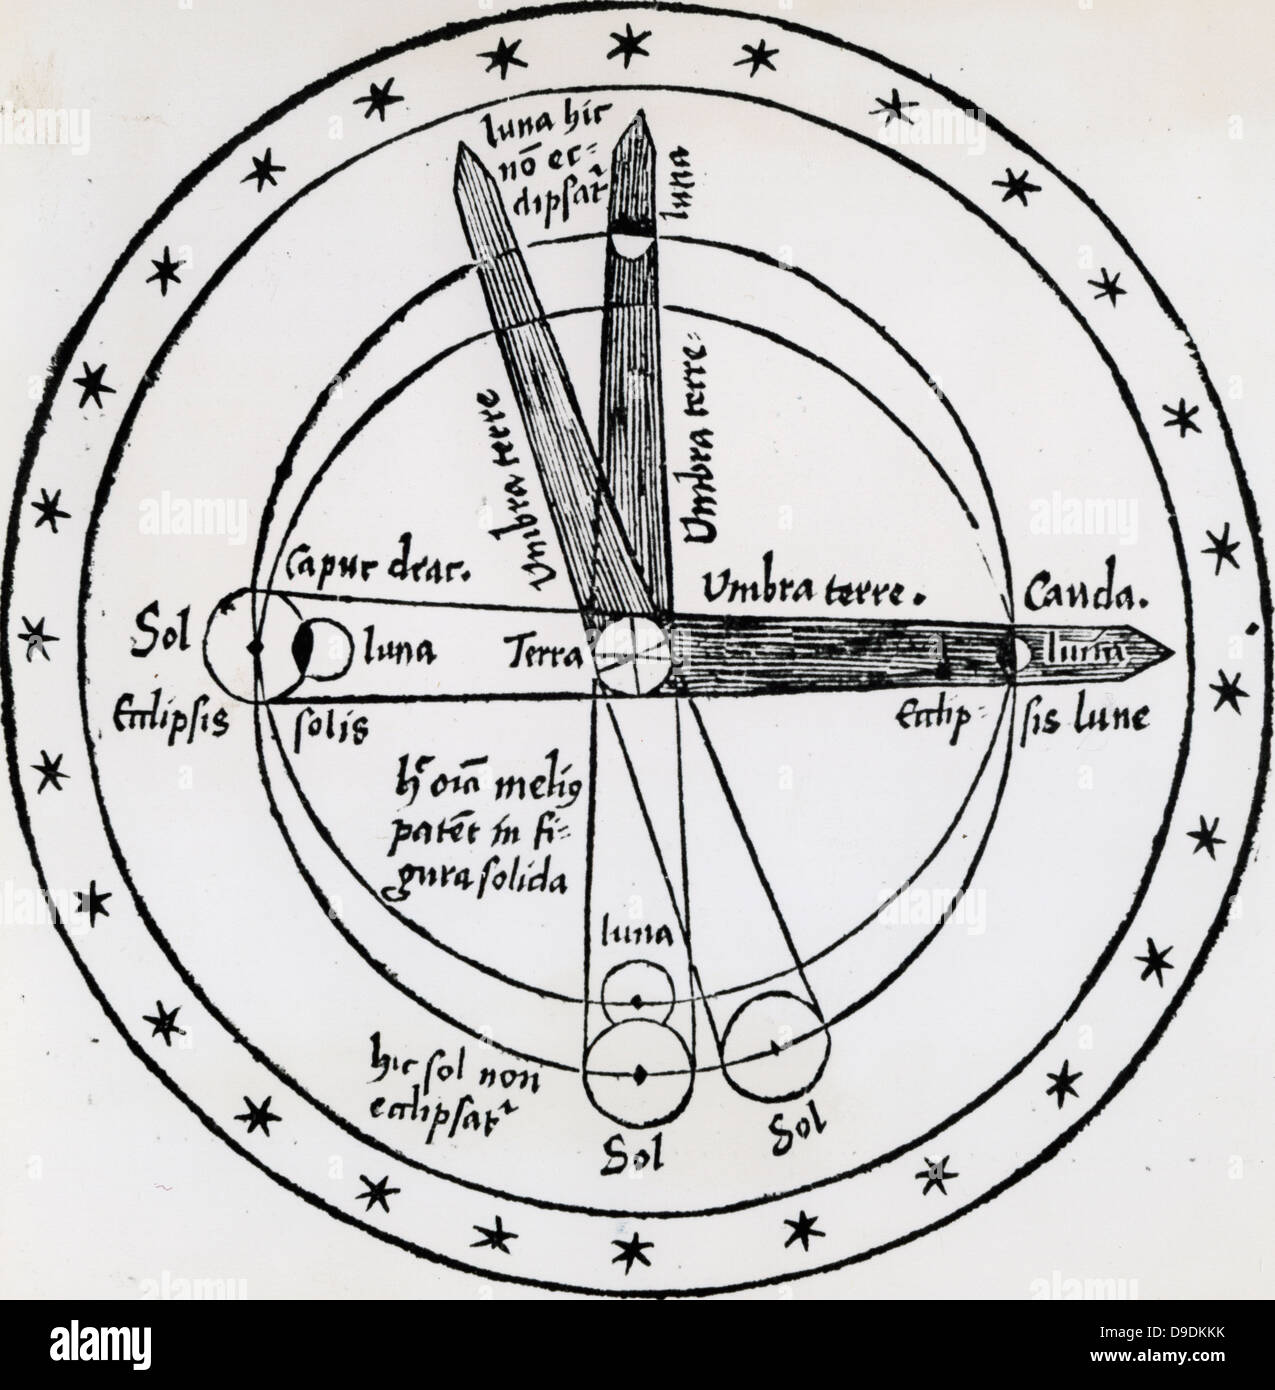 Diagram of lunar eclipse showing how the moon is only eclipsed when diagram of lunar eclipse showing how the moon is only eclipsed when it moves into the earths shadow woodcut1508 ccuart Choice Image